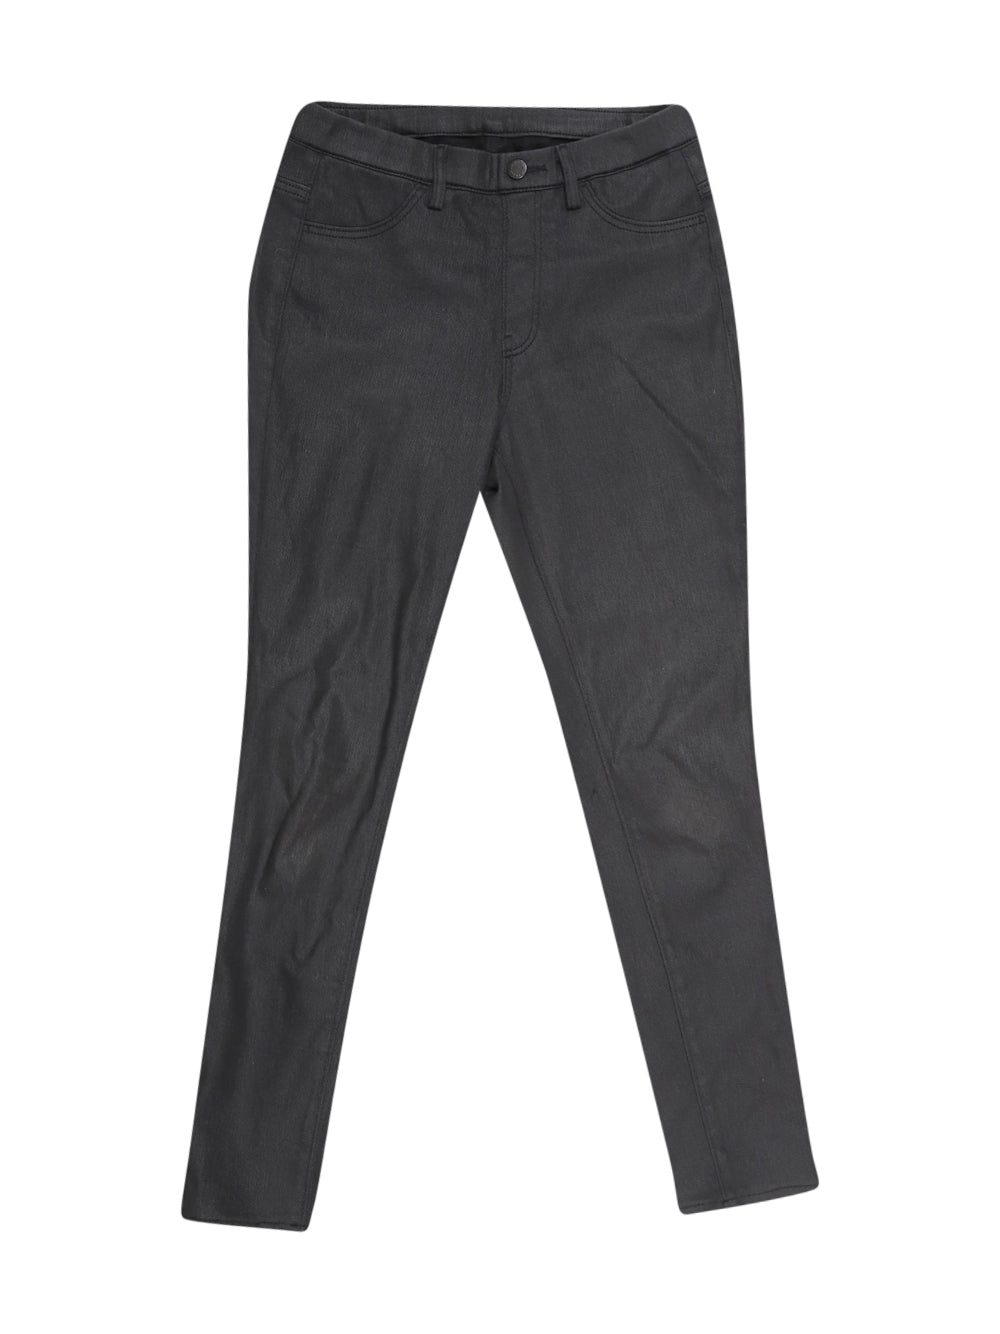 Front photo of Preloved UNIQLO Black Woman's trousers - size 6/XS